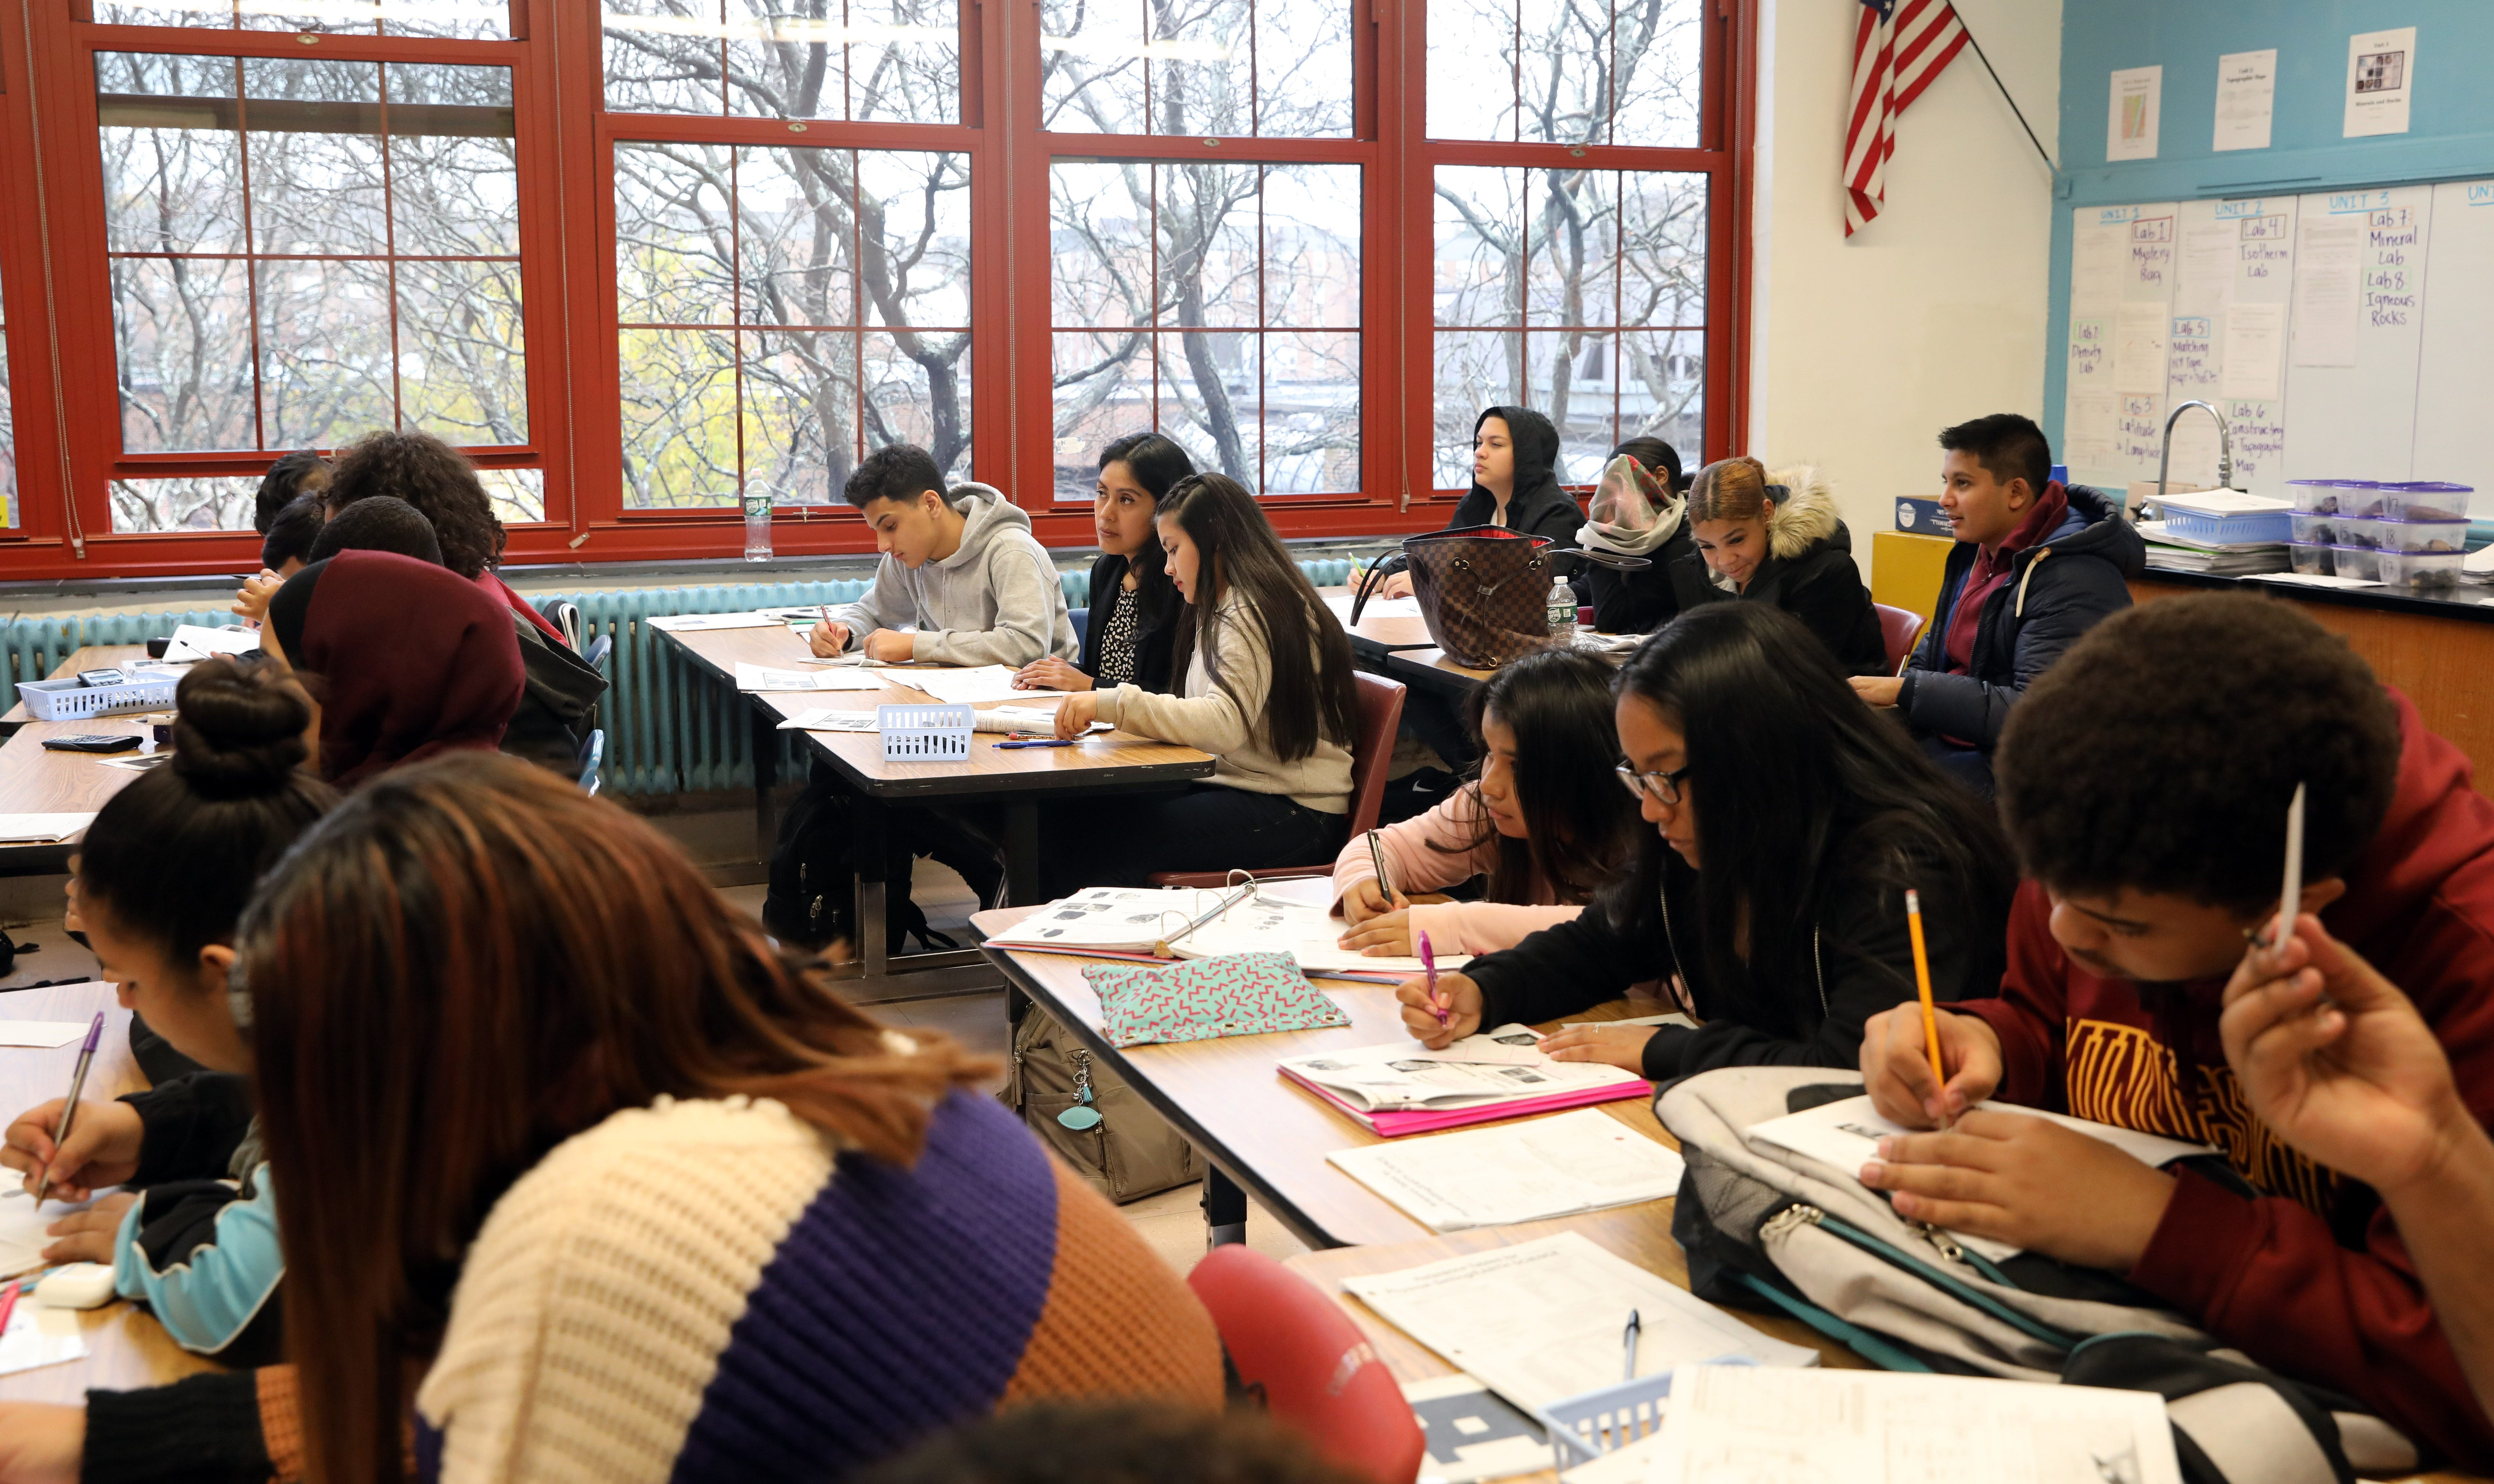 """Catalina Chavez, center, an """"English as a new language"""" teacher works with sophomore Vanessa Mejia, who came to the country two months ago from Guatemala, during Eartth Science class at Roosevelt High School - Early College Studies Nov. 7, 2019 in Yonkers. Fuad Alhomidi, a student from Yemen, works beside them.Secondary"""